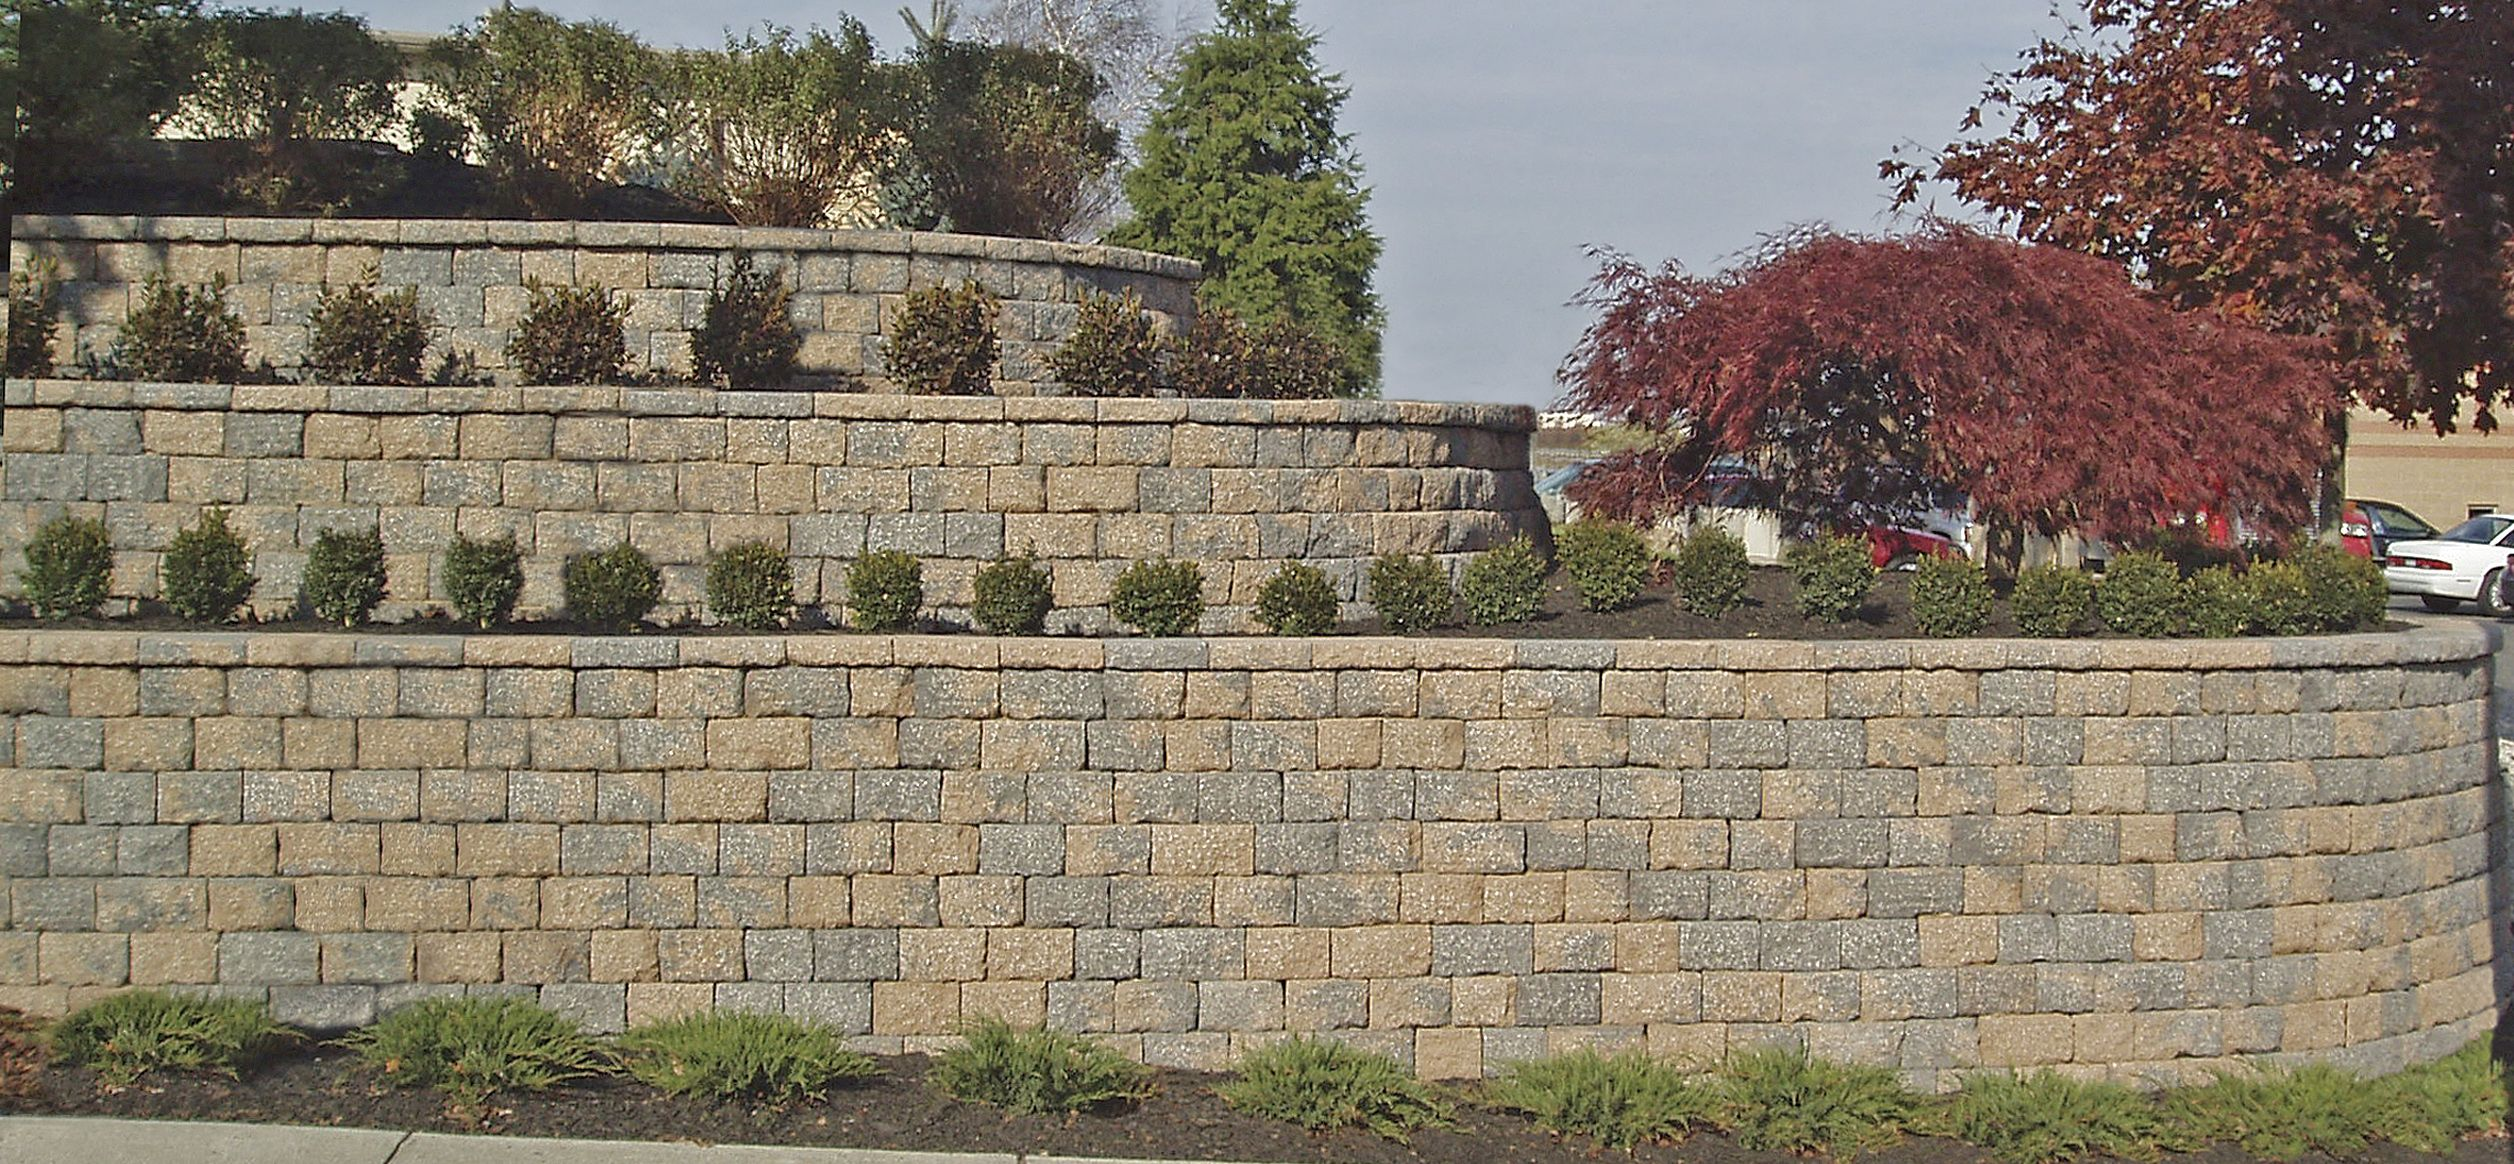 Retaining Wall Interlocking Blocks Retaining Wall Interlocking Blocks Retaining Wall Cinder Block Walls Retaining Wall Design